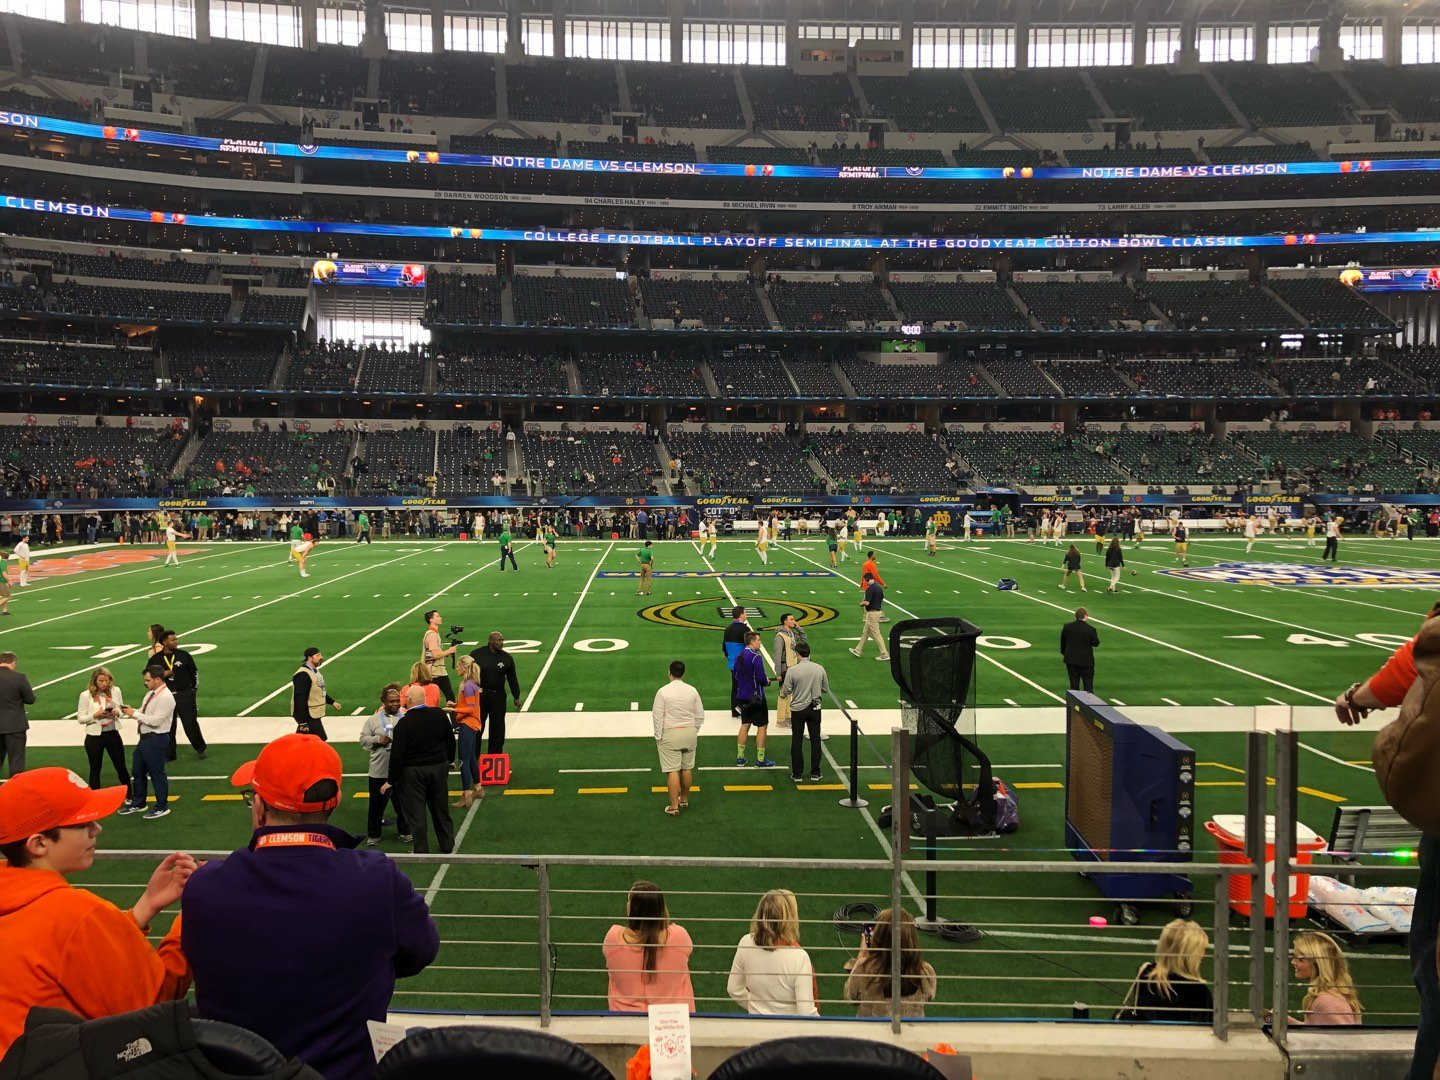 AT&T Stadium Section C113 Row 4 Seat 3